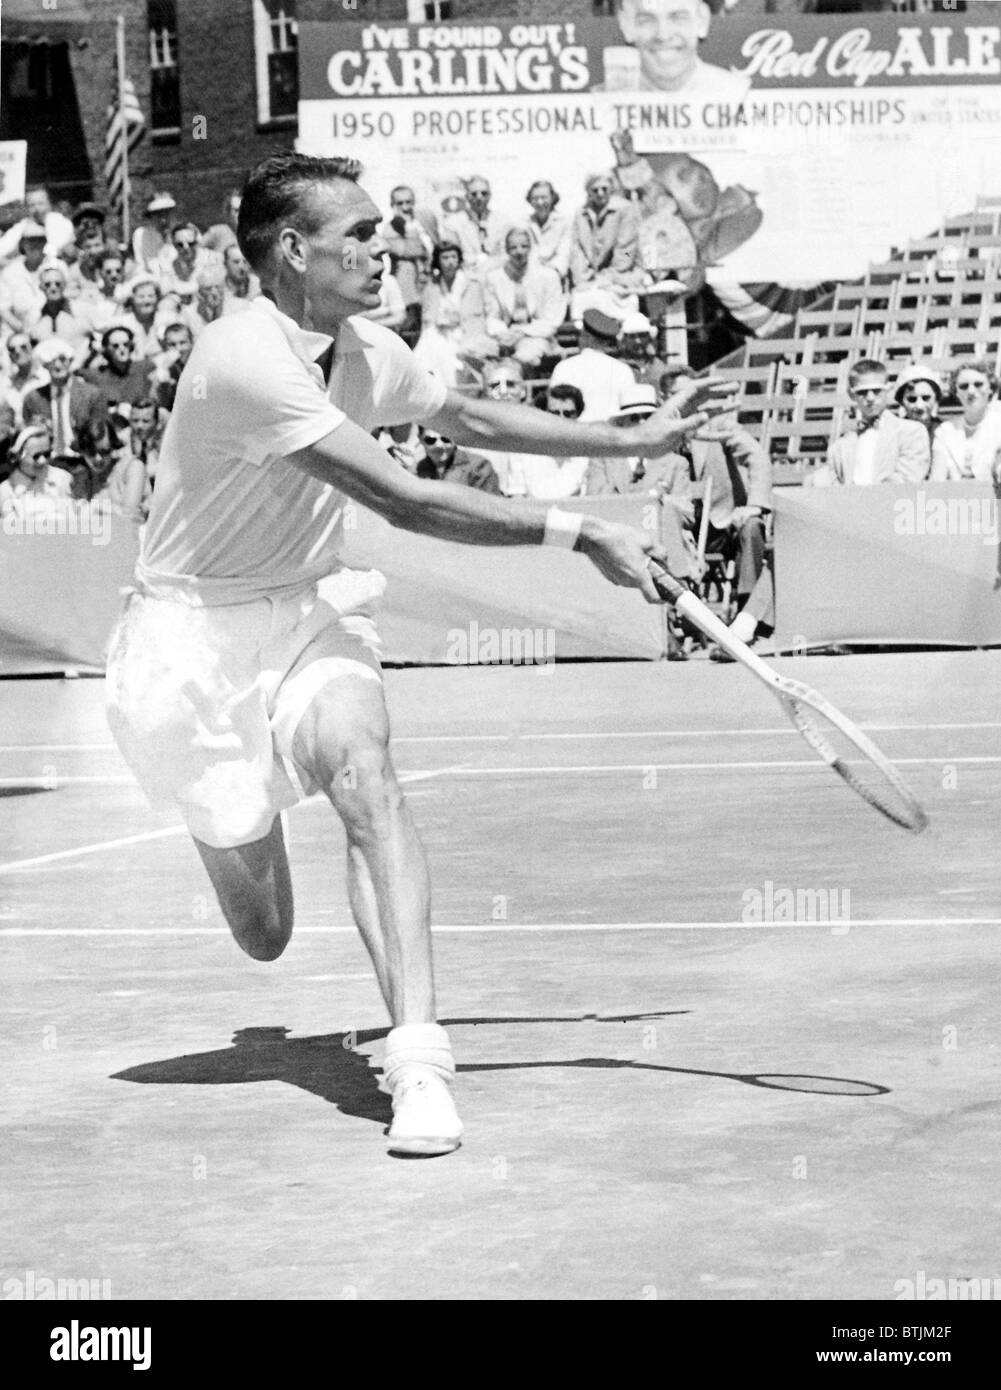 Tennis champion Jack Kramer playing against Pancho Francisco